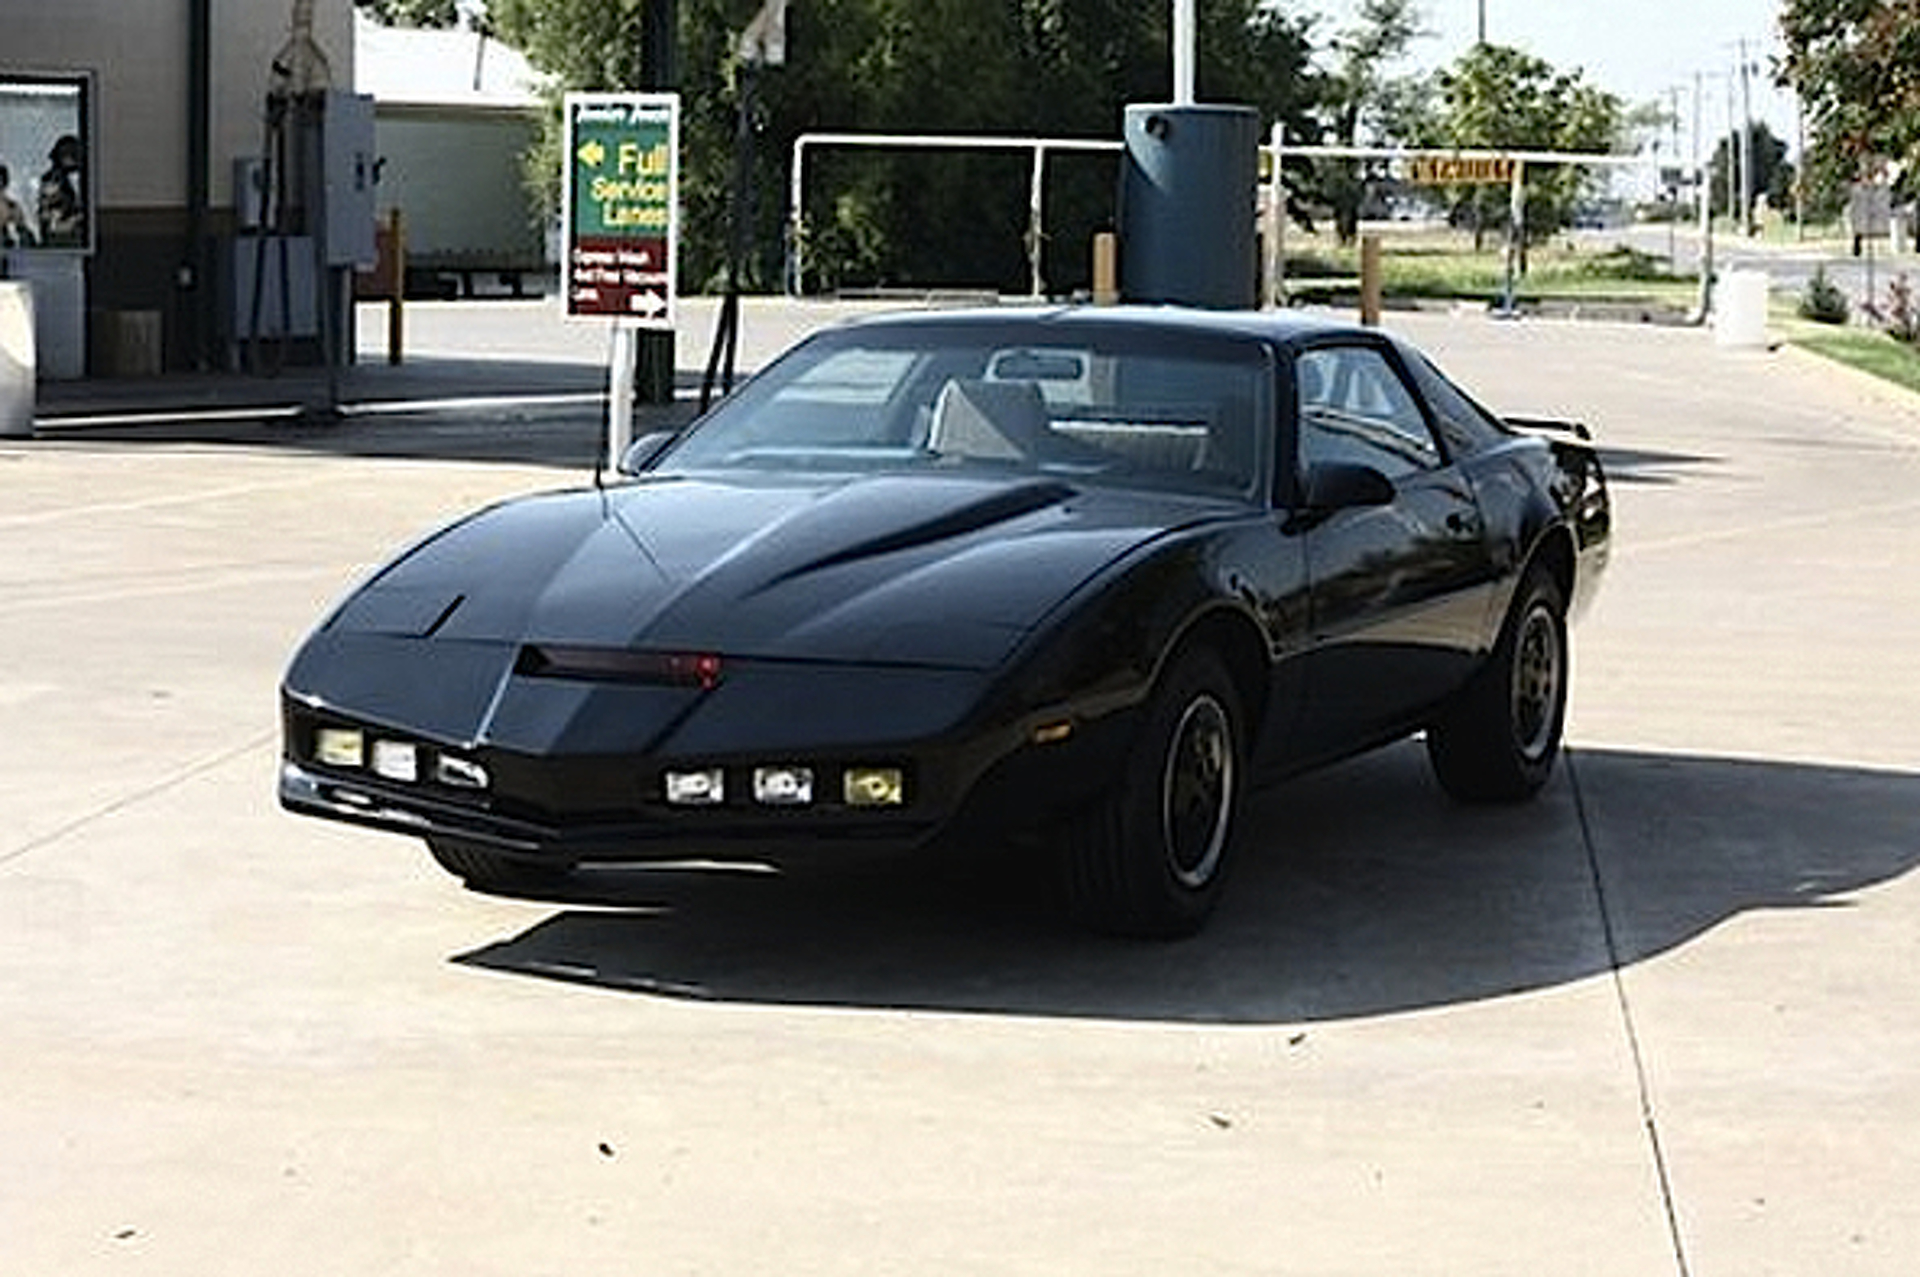 ebay car of the week 1986 pontiac firebird knight rider replica. Black Bedroom Furniture Sets. Home Design Ideas